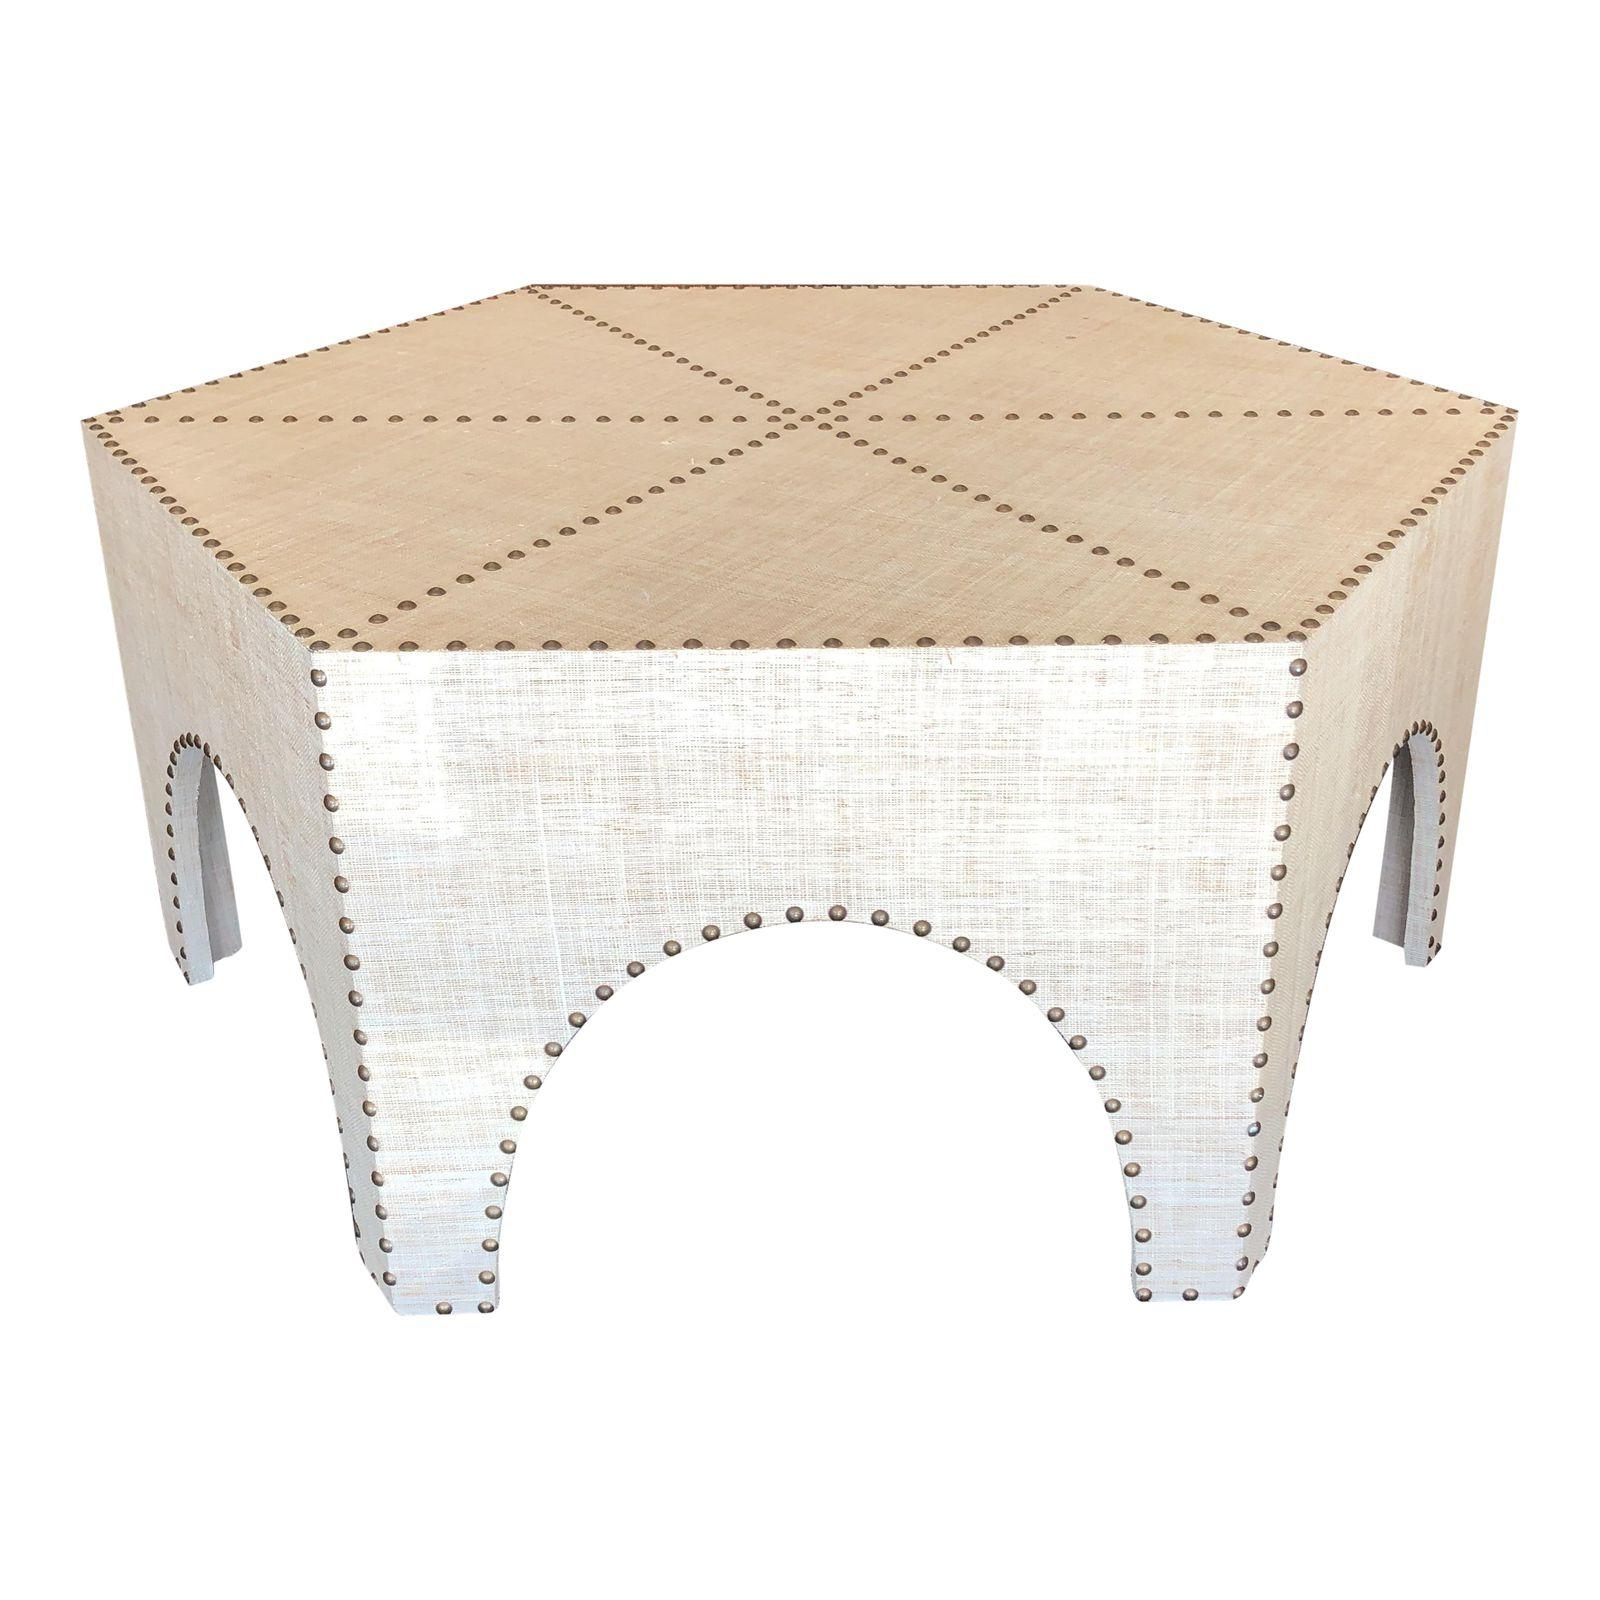 New Palecek Casablanca Raffia Coffee Table – Design Plus Gallery Throughout Casablanca Coffee Tables (View 10 of 30)